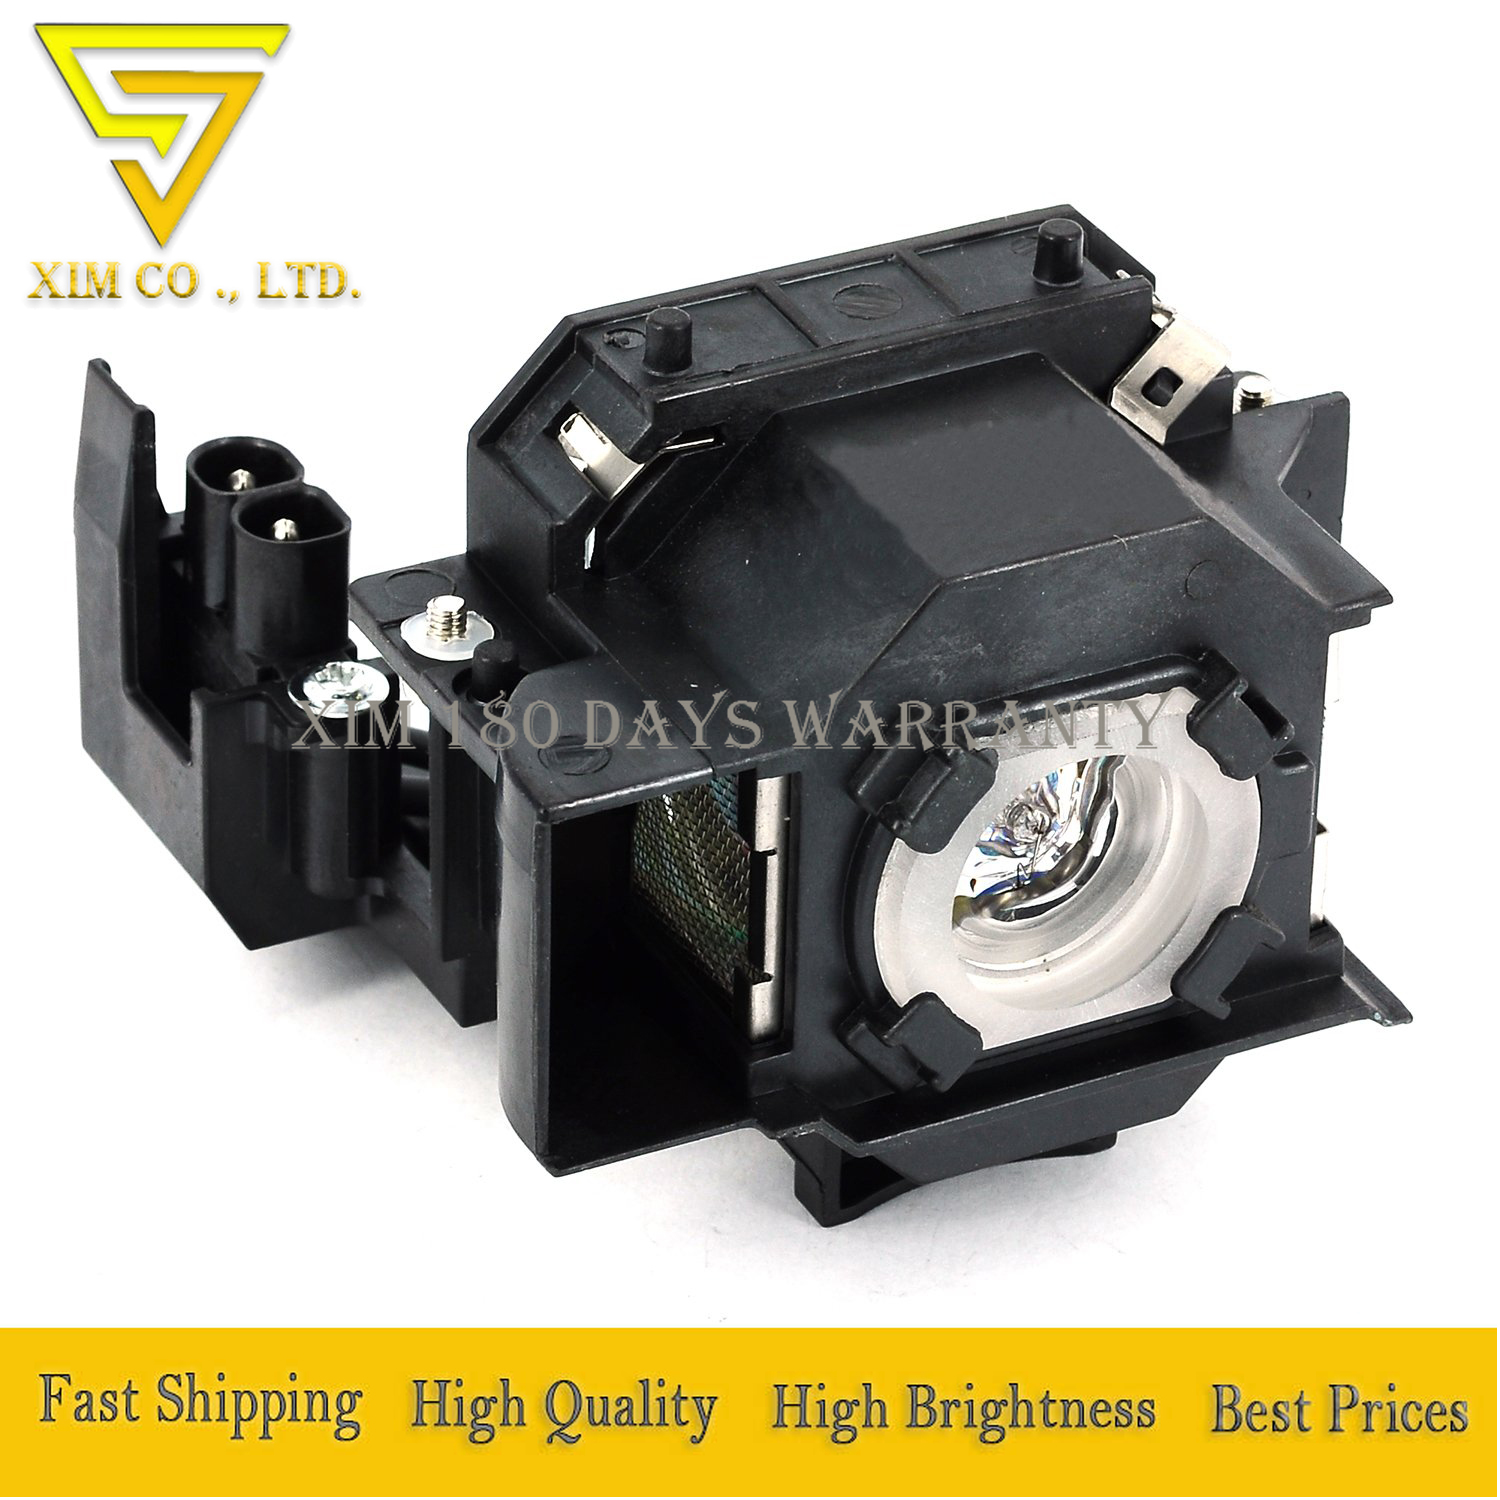 High Quality ELPLP34/ V13H010L34 Replacement Projector Lamp For EPSON PowerLite 62C PowerLite 76C PowerLite 82C With Housing